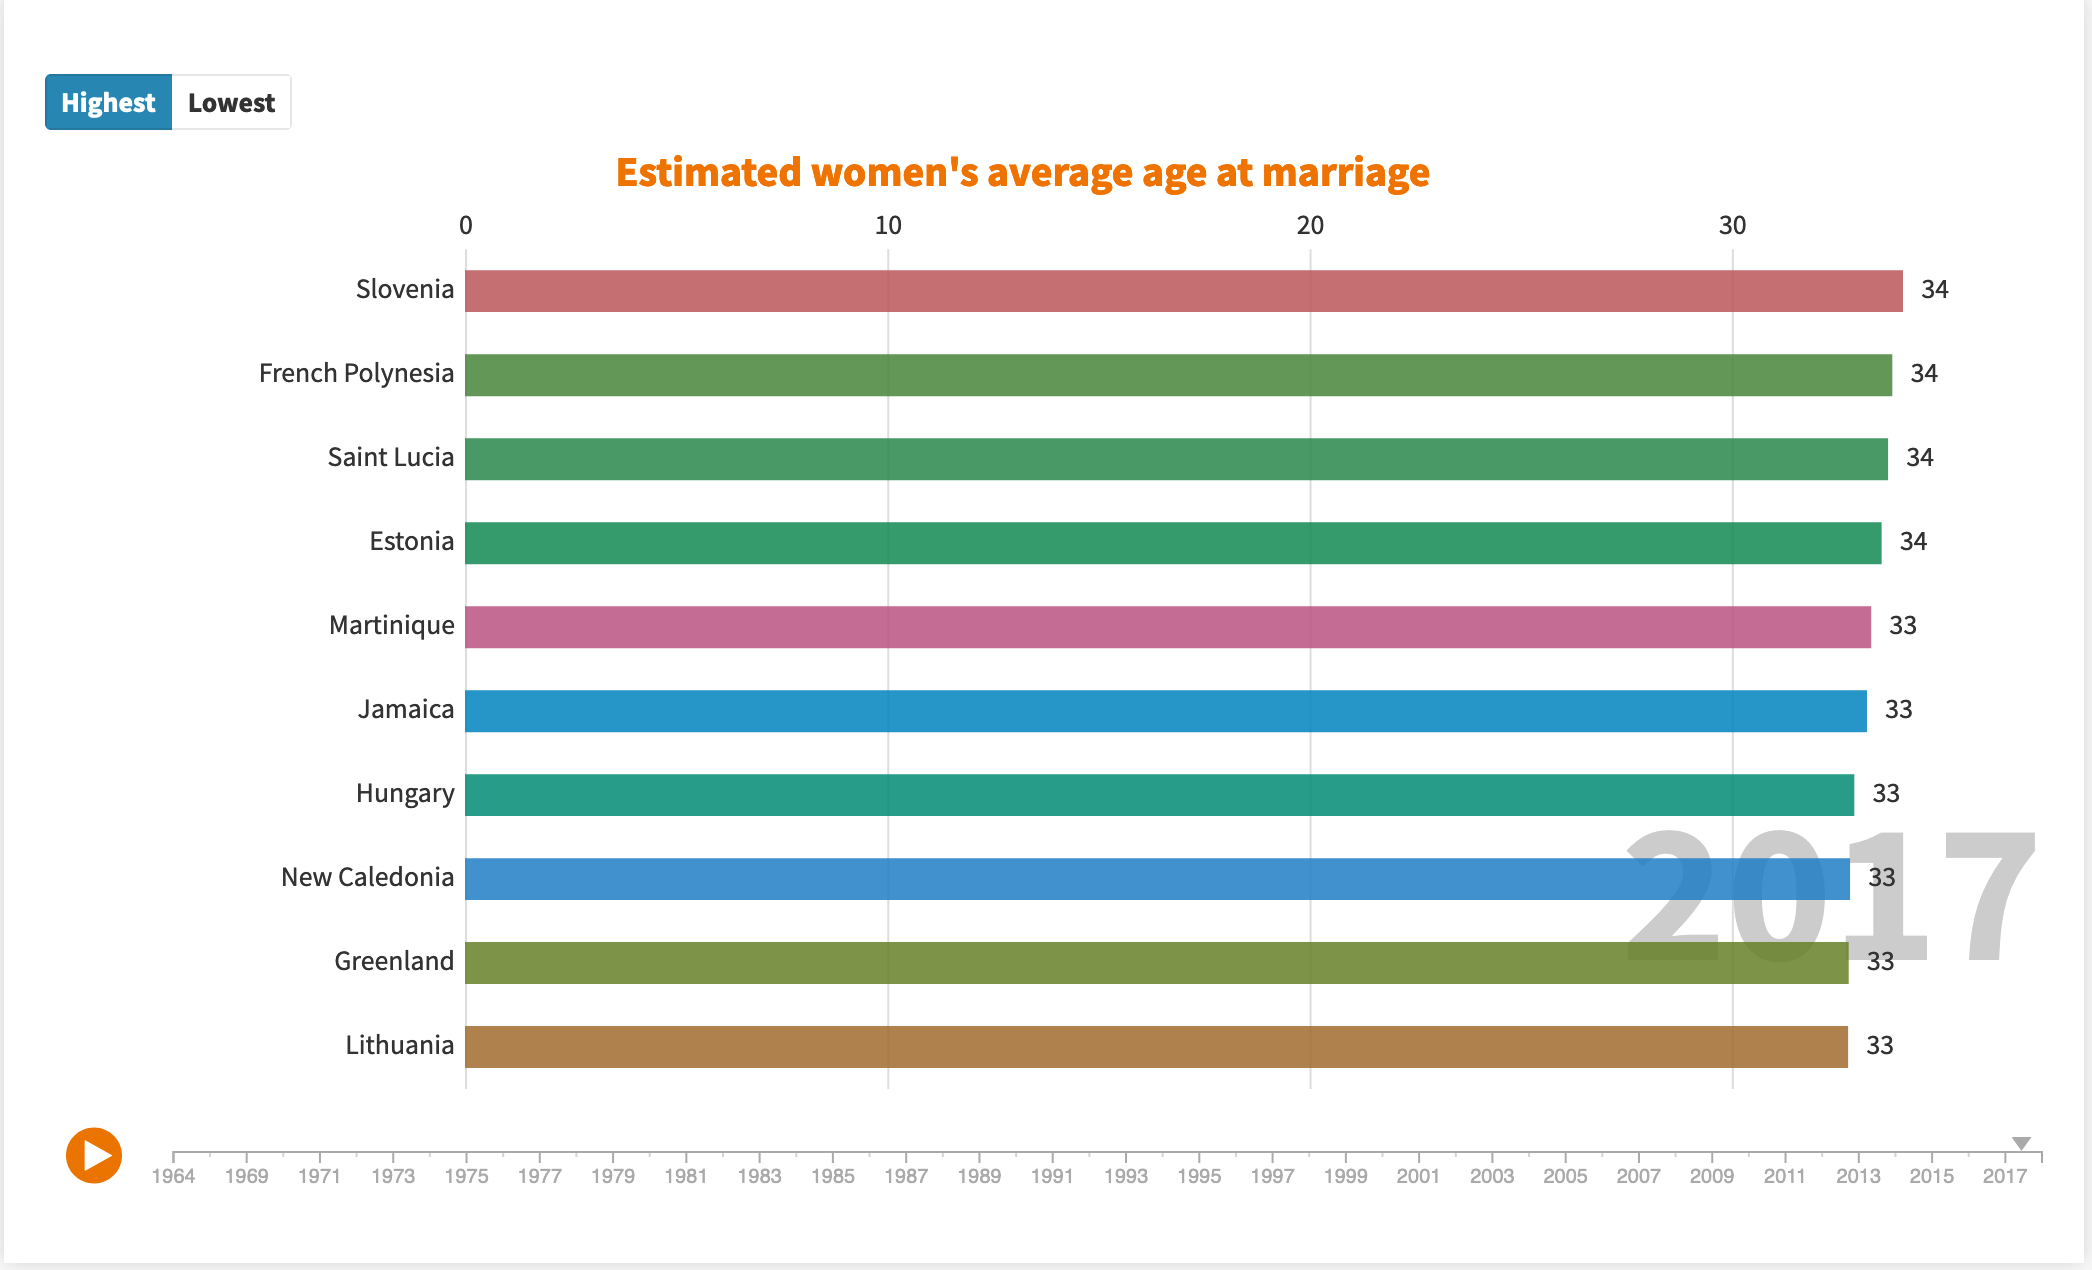 An animated graphic about women's average married age in different countries from 1964 to 2018. https://public.flourish.studio/visualisation/1550646/